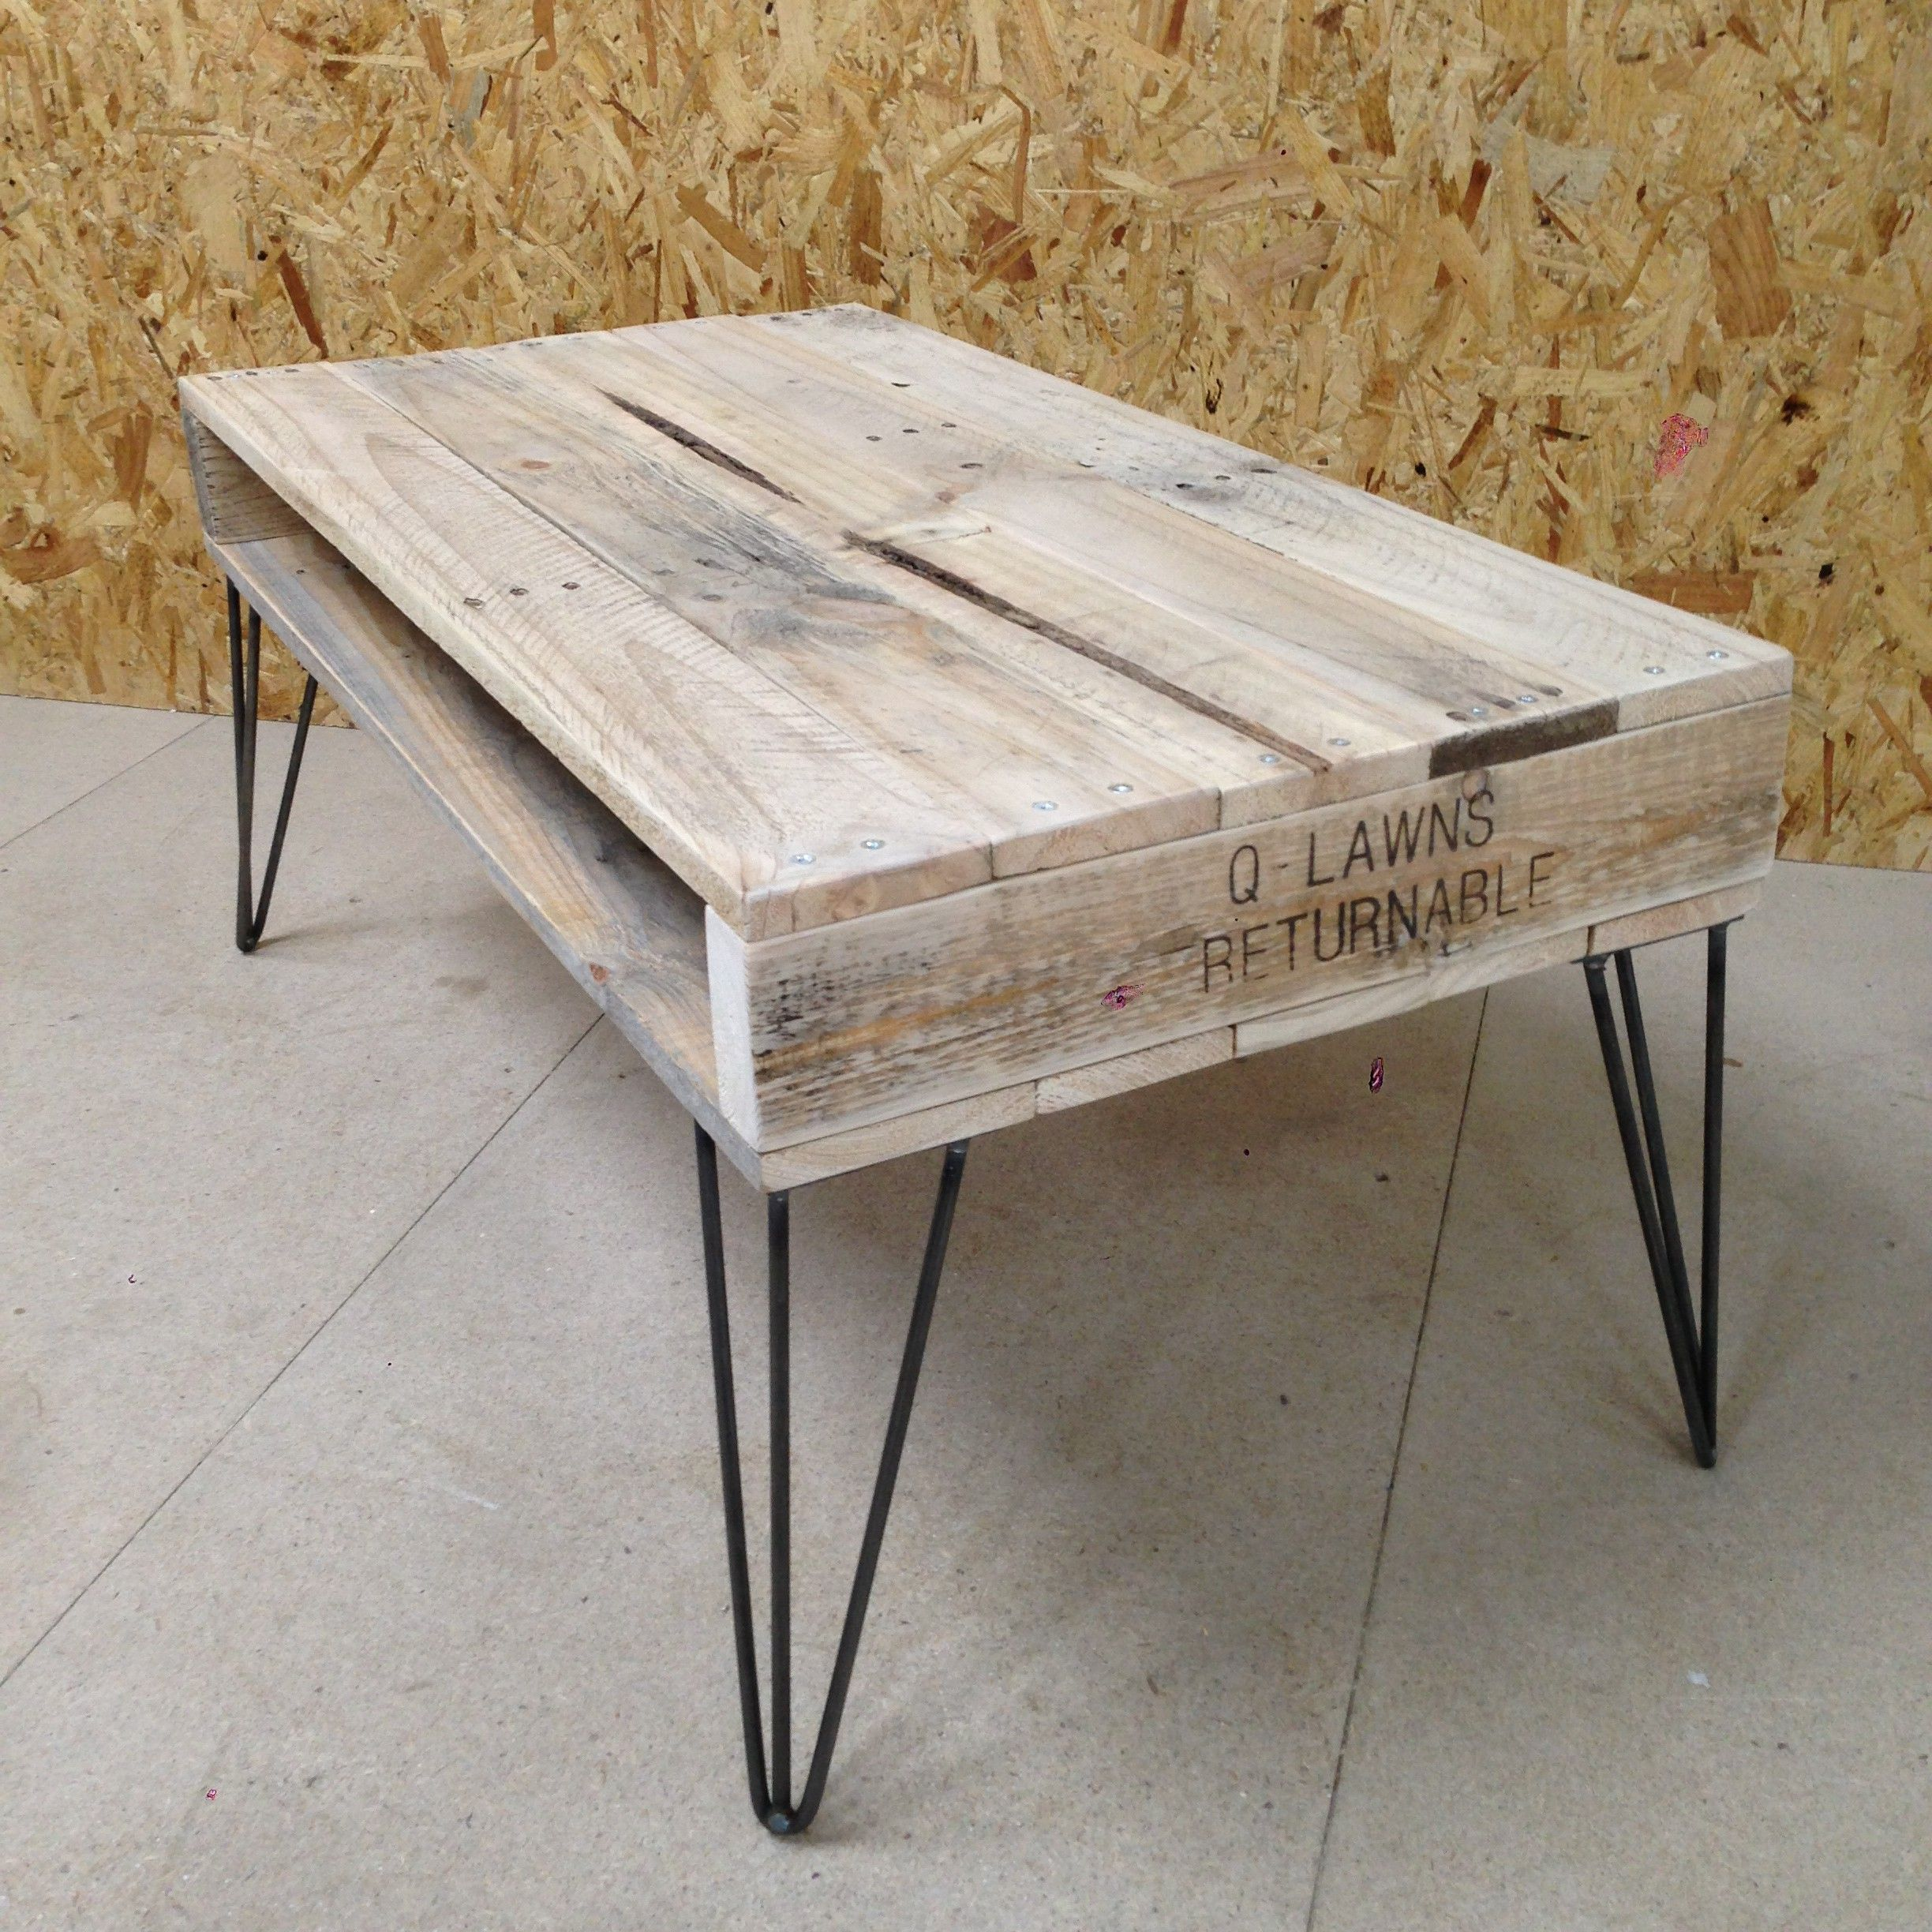 Coffee Table Marvelous Pallet Wood Coffee Table Designs Diy Wood Pallet Tables Diy Coffee Table Wooden Pallet Table